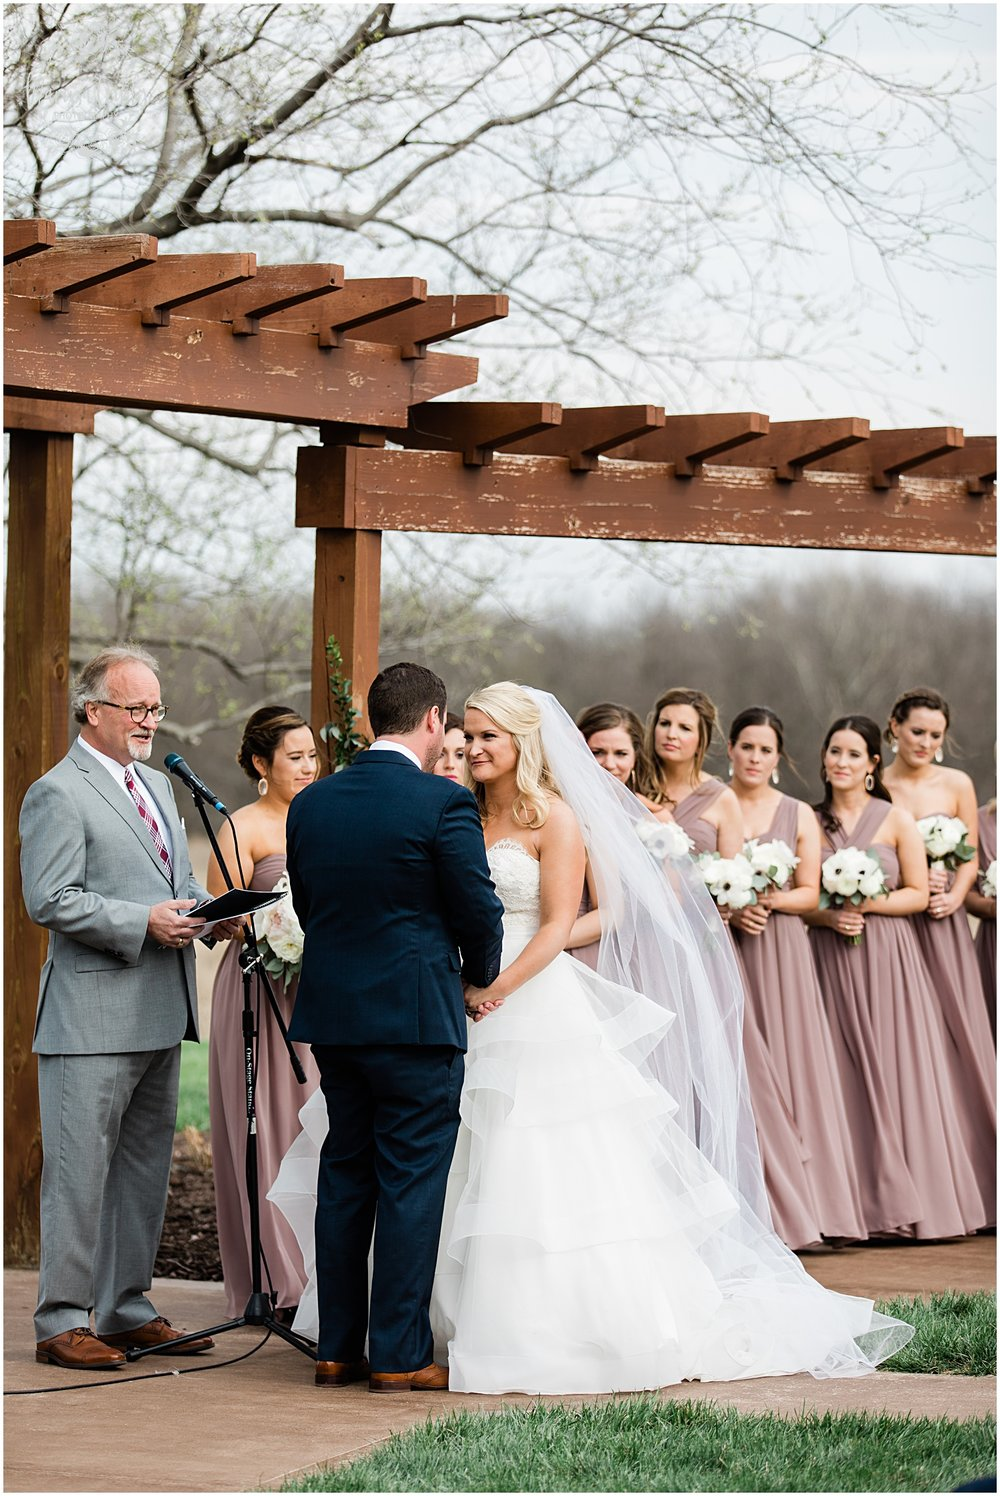 TILSON WEDDING | THE LEGACY AT GREEN HILLS | SIMPLE ELEGANCE | MARISSA CRIBBS PHOTOGRAPHY_4707.jpg